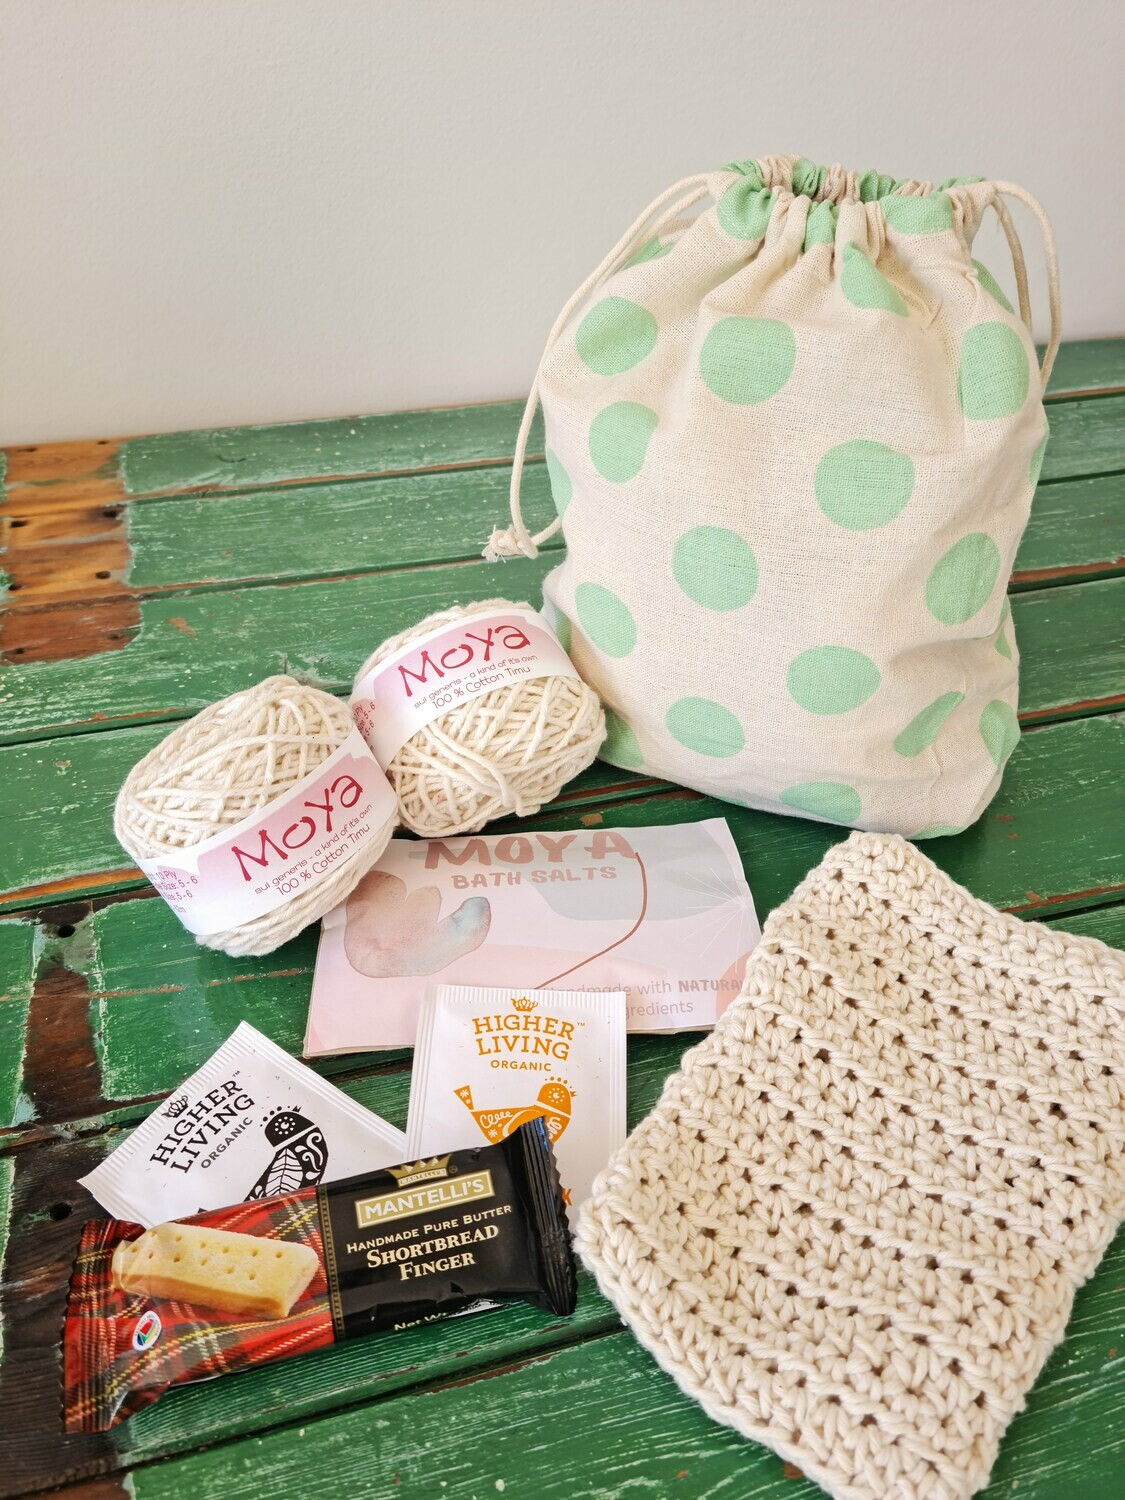 MoYa Pamper & Self Care Kit